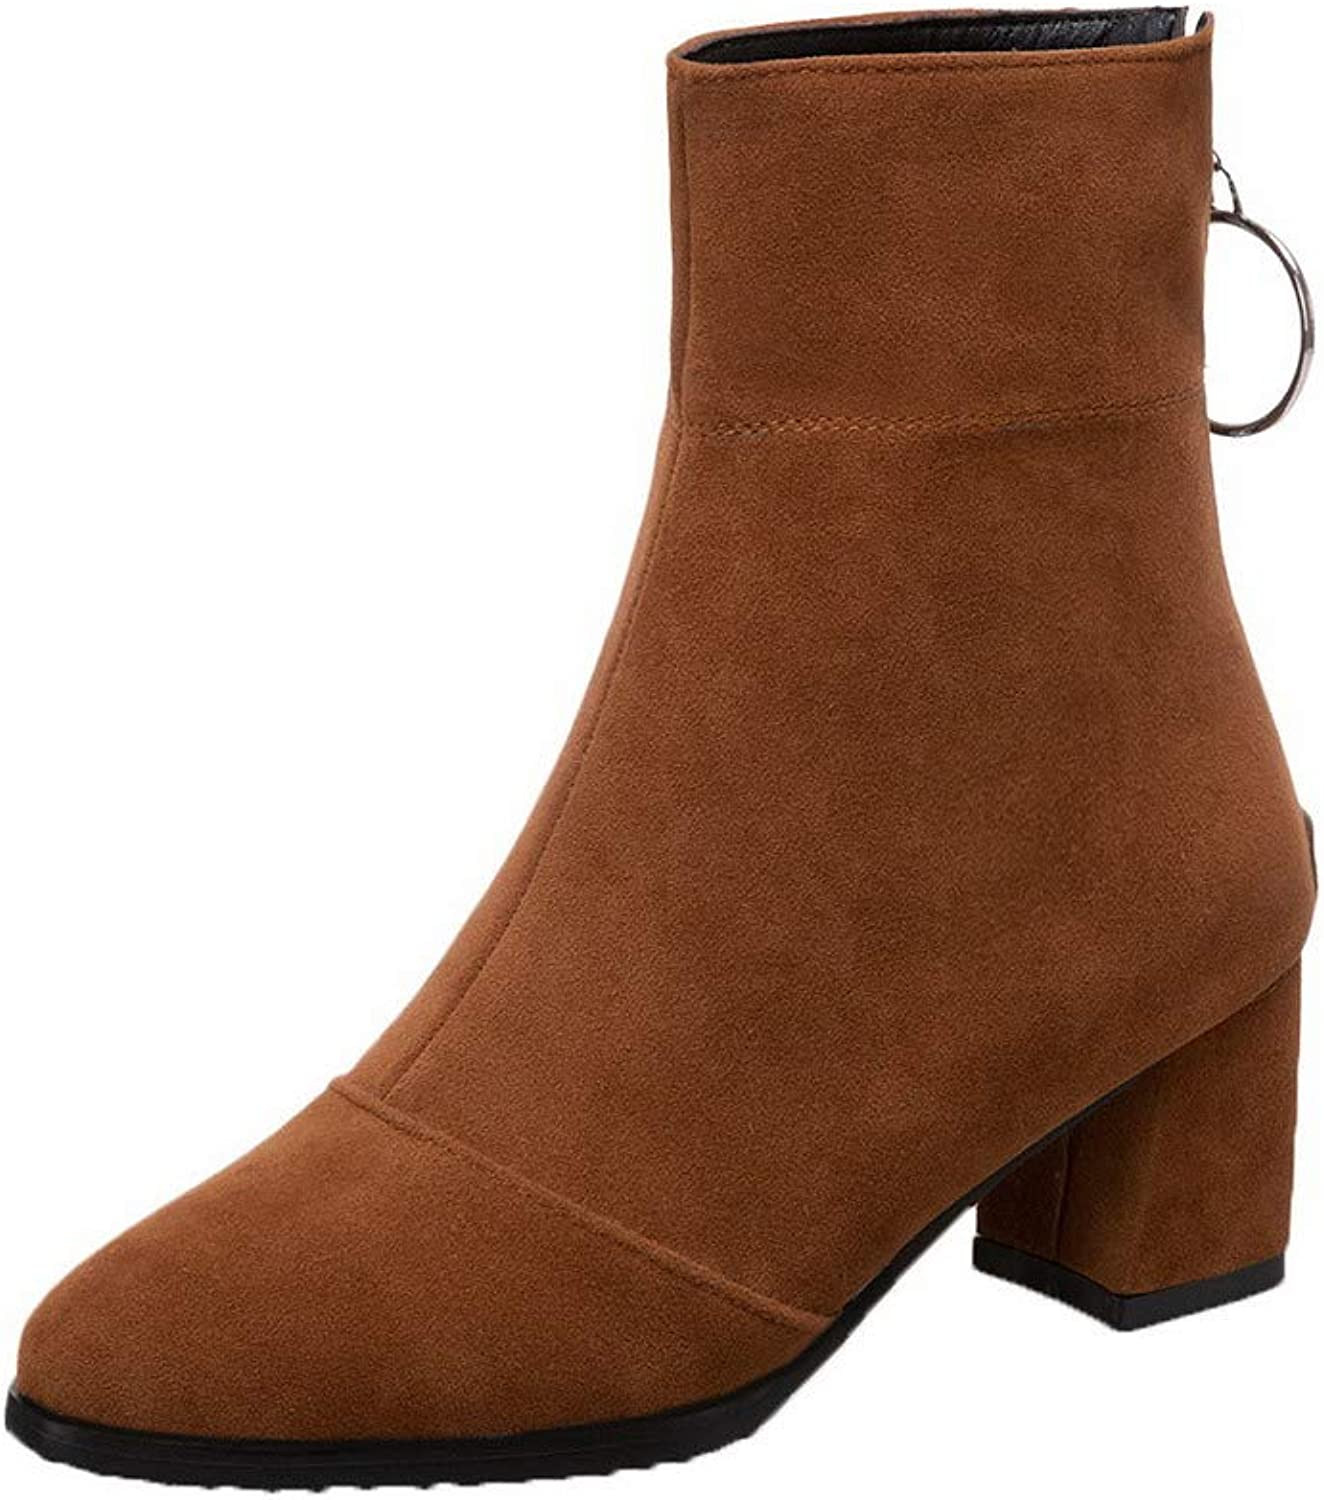 AmoonyFashion Women's Round-Toe Kitten-Heels Frosted Low-Top Solid Boots, BUSXT114532